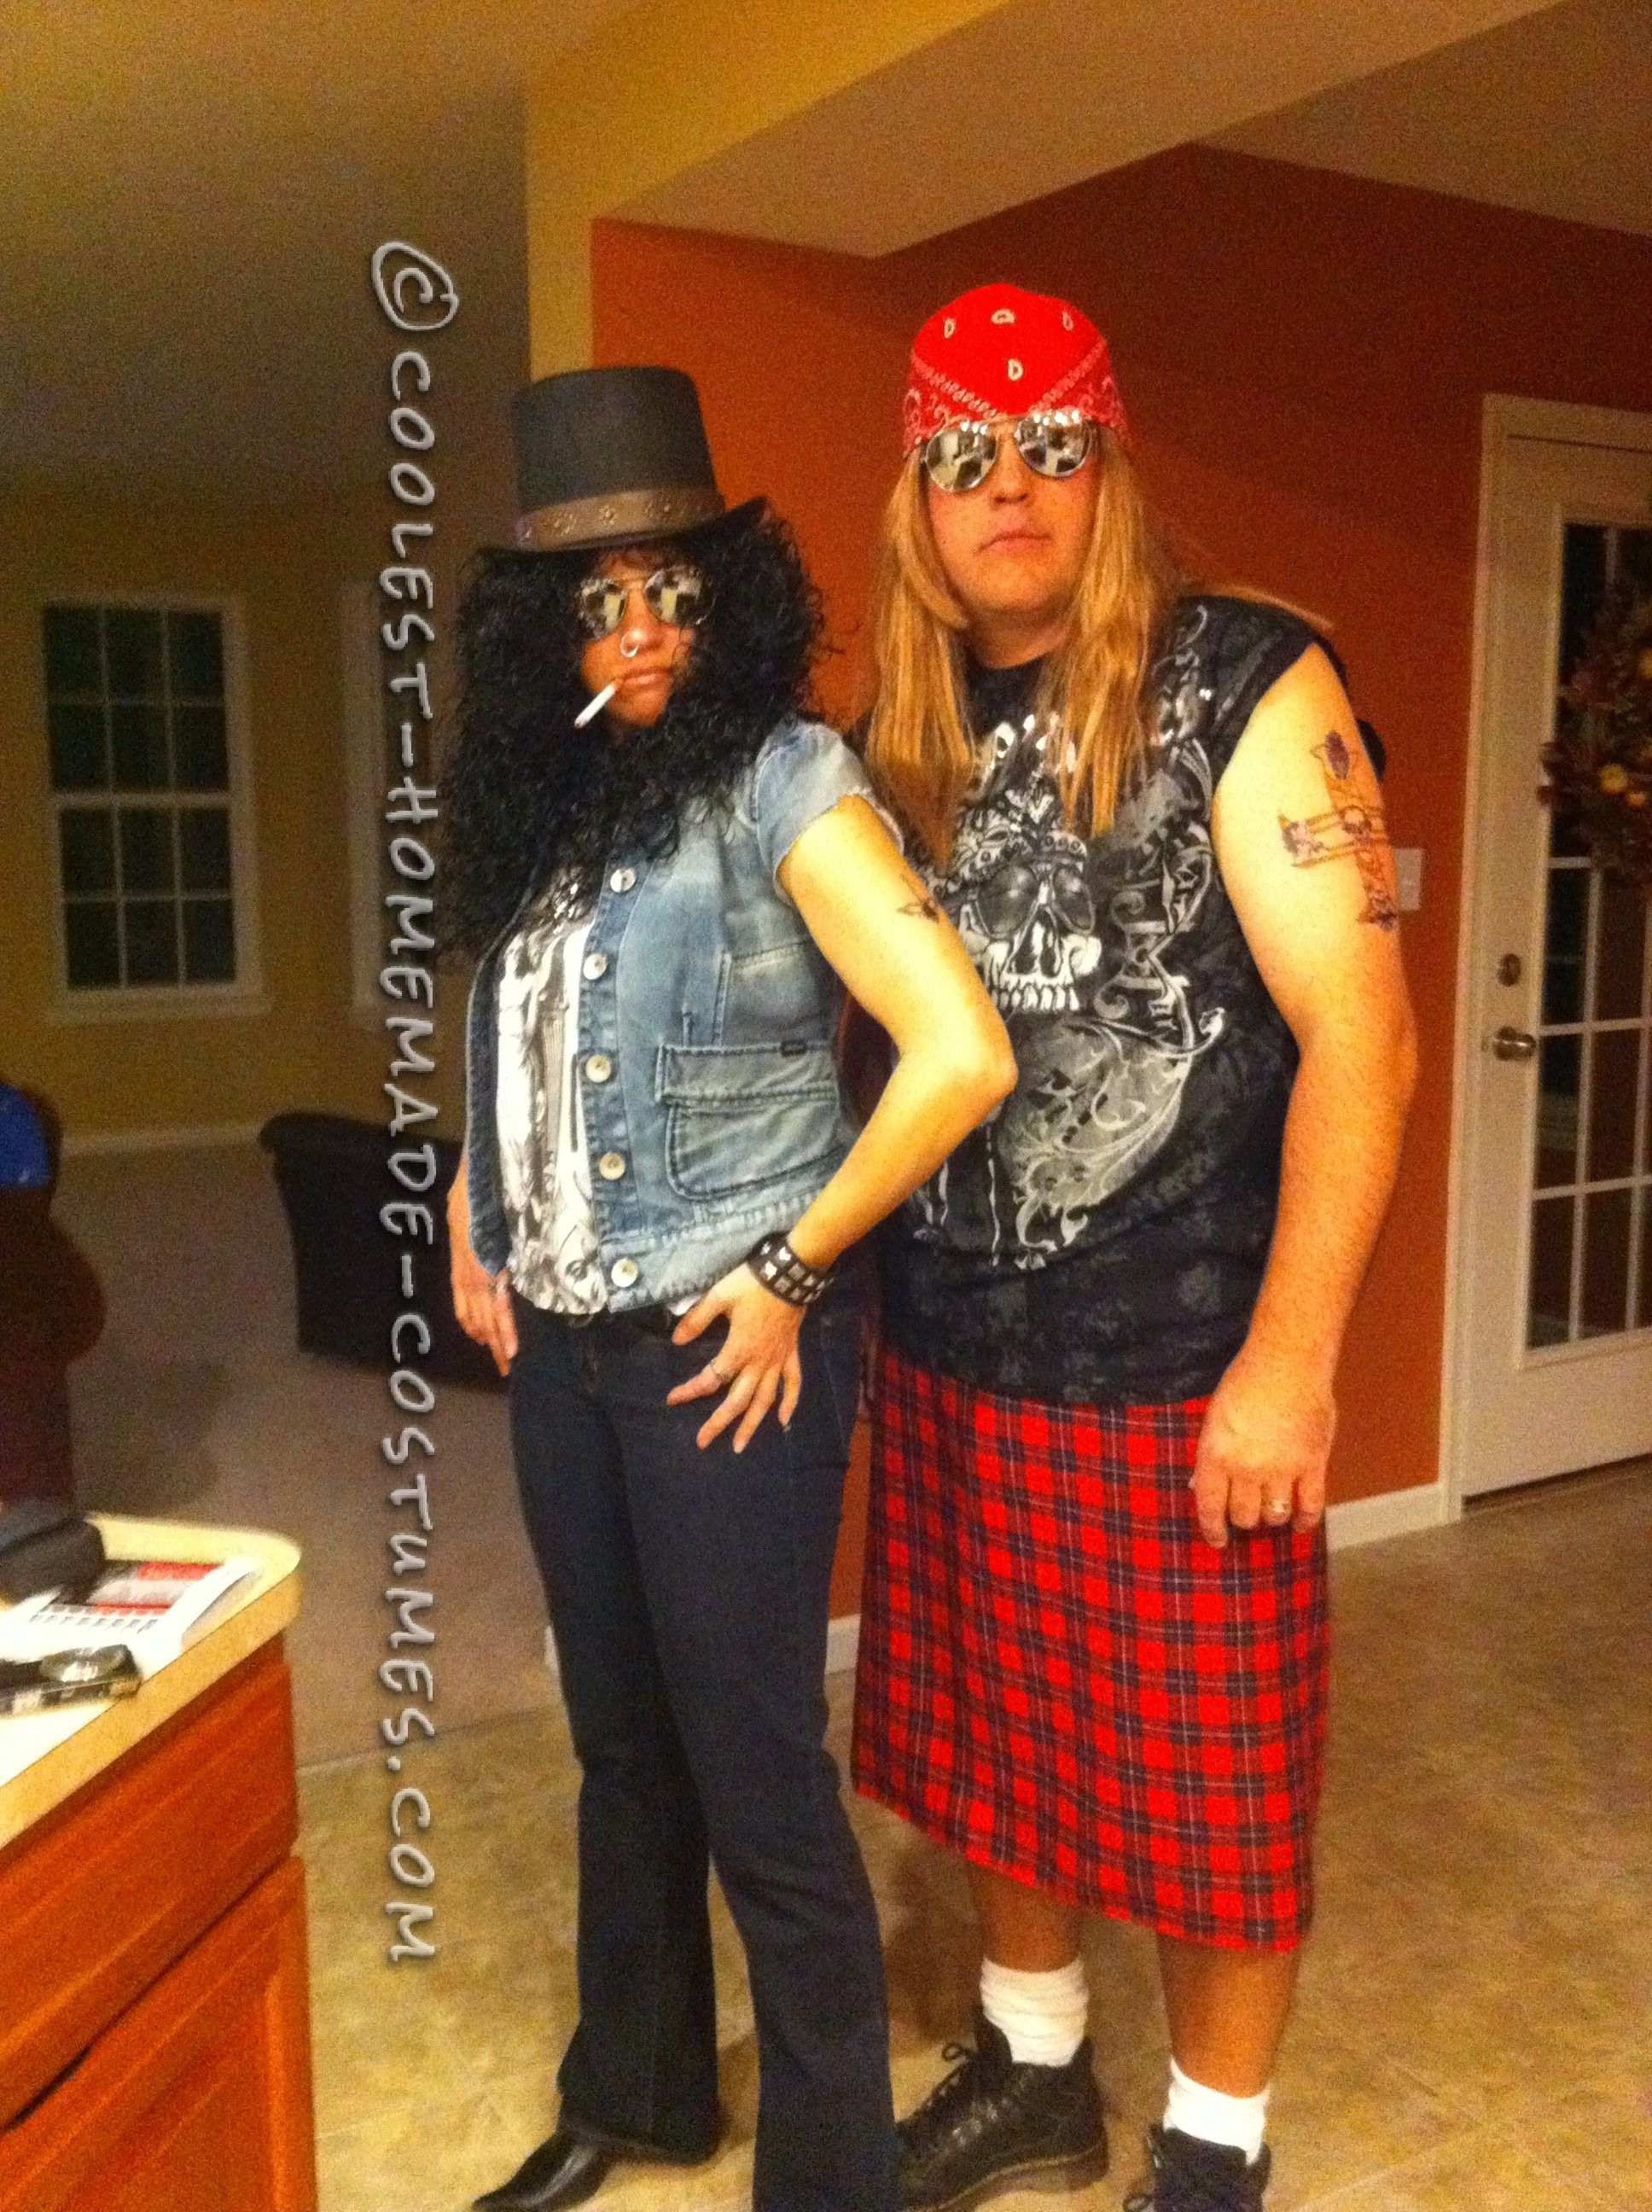 rock star legends for one night: axl and slash couple halloween